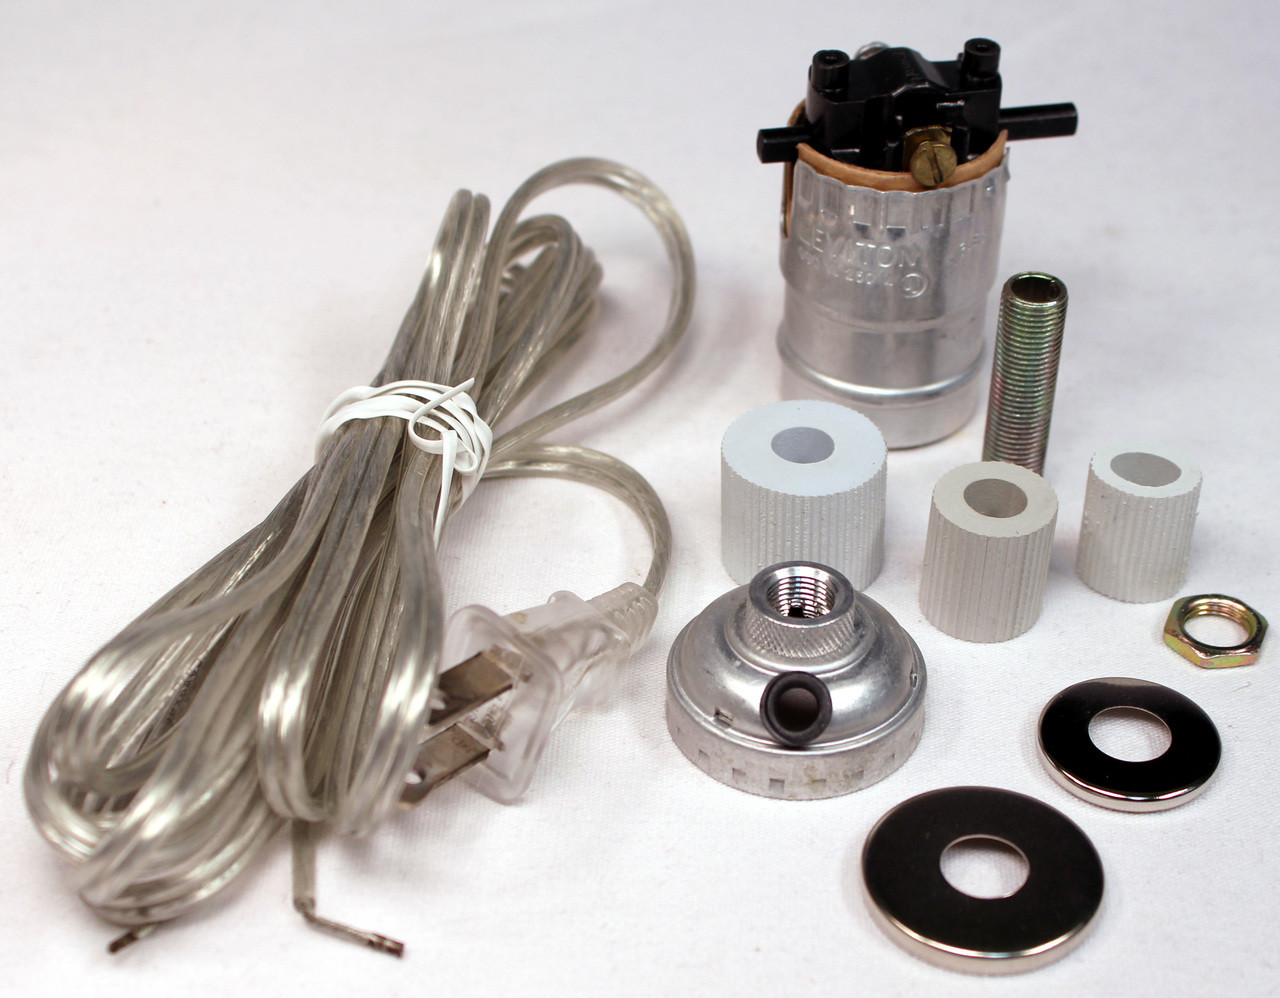 hight resolution of creative hobbies silver finish bottle lamp adapter kit with 3 wire a bottle lamp kit